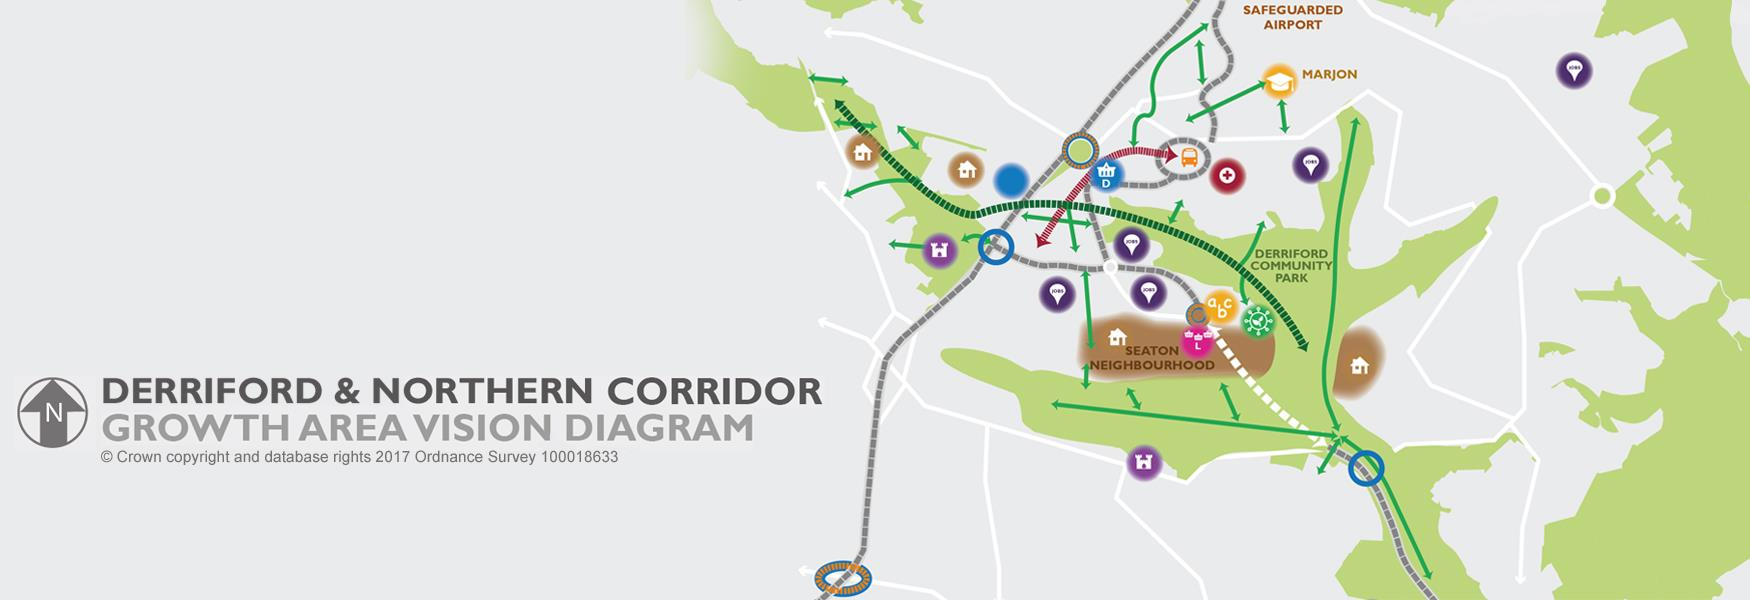 Derriford & Northern Corridor Growth Area Vision Diagram